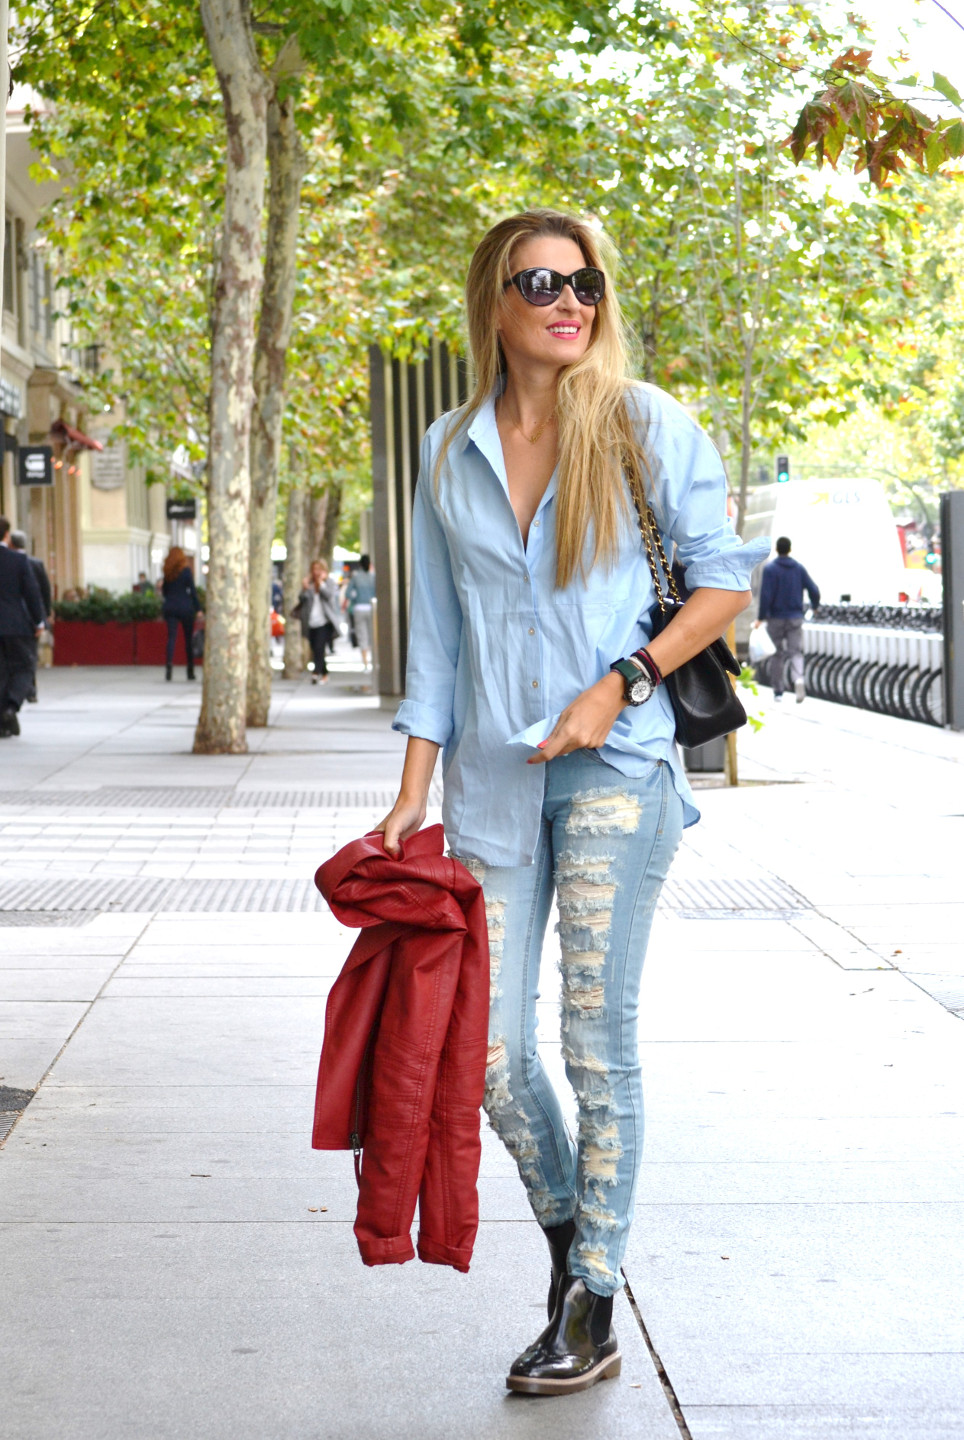 Ripped_Jeans_Booties_Armand_Basi_Sunnies_Leather_Jacket_Jumbo_Chanel_Venca_Lara_Martin_Gilarranz_Bymyheels (11)